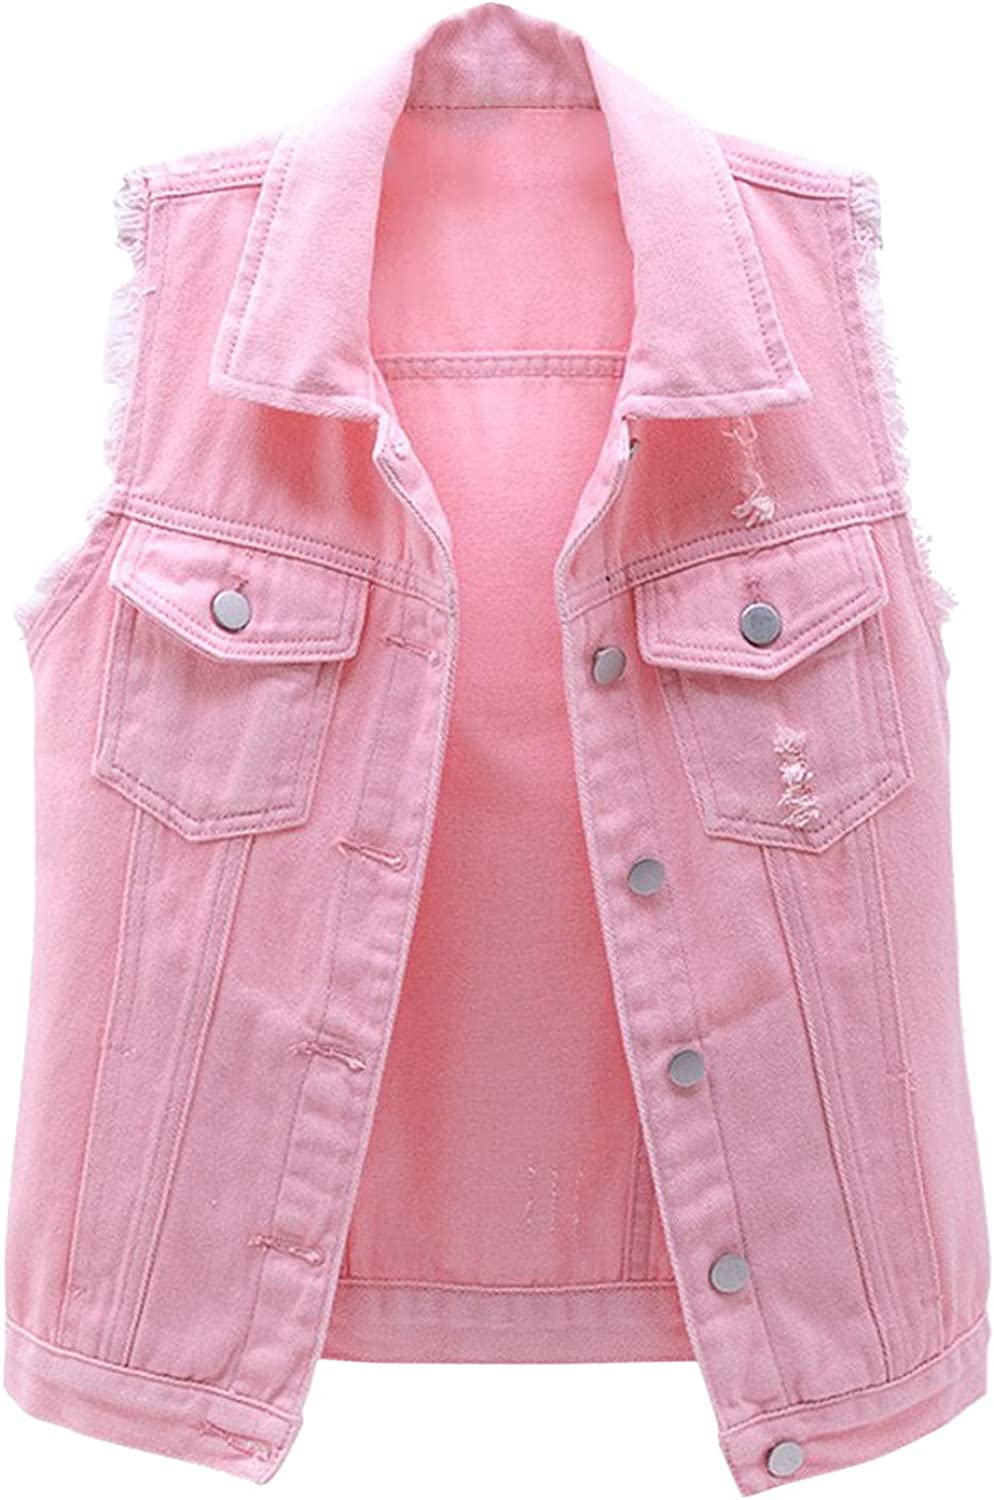 MAYW Women's Denim Waistcoat Jacket Ripped Tops Candy Color Sleeveless Distressed Denim Jean Vest Jacket with Pockets